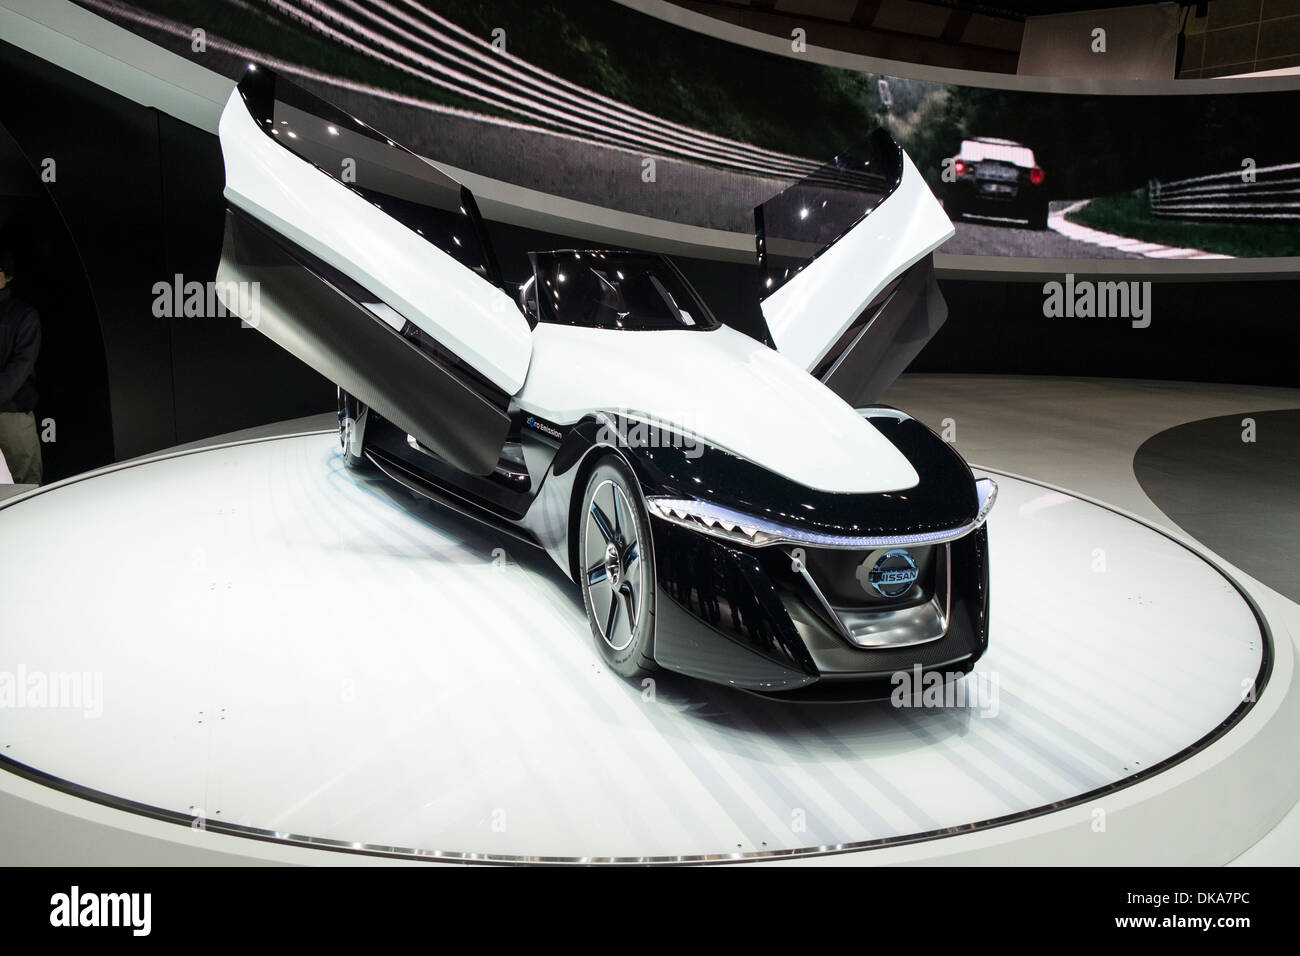 Nissan Bladeglider concept electric car at Tokyo Motor Show 2013 in Japan Stock Photo